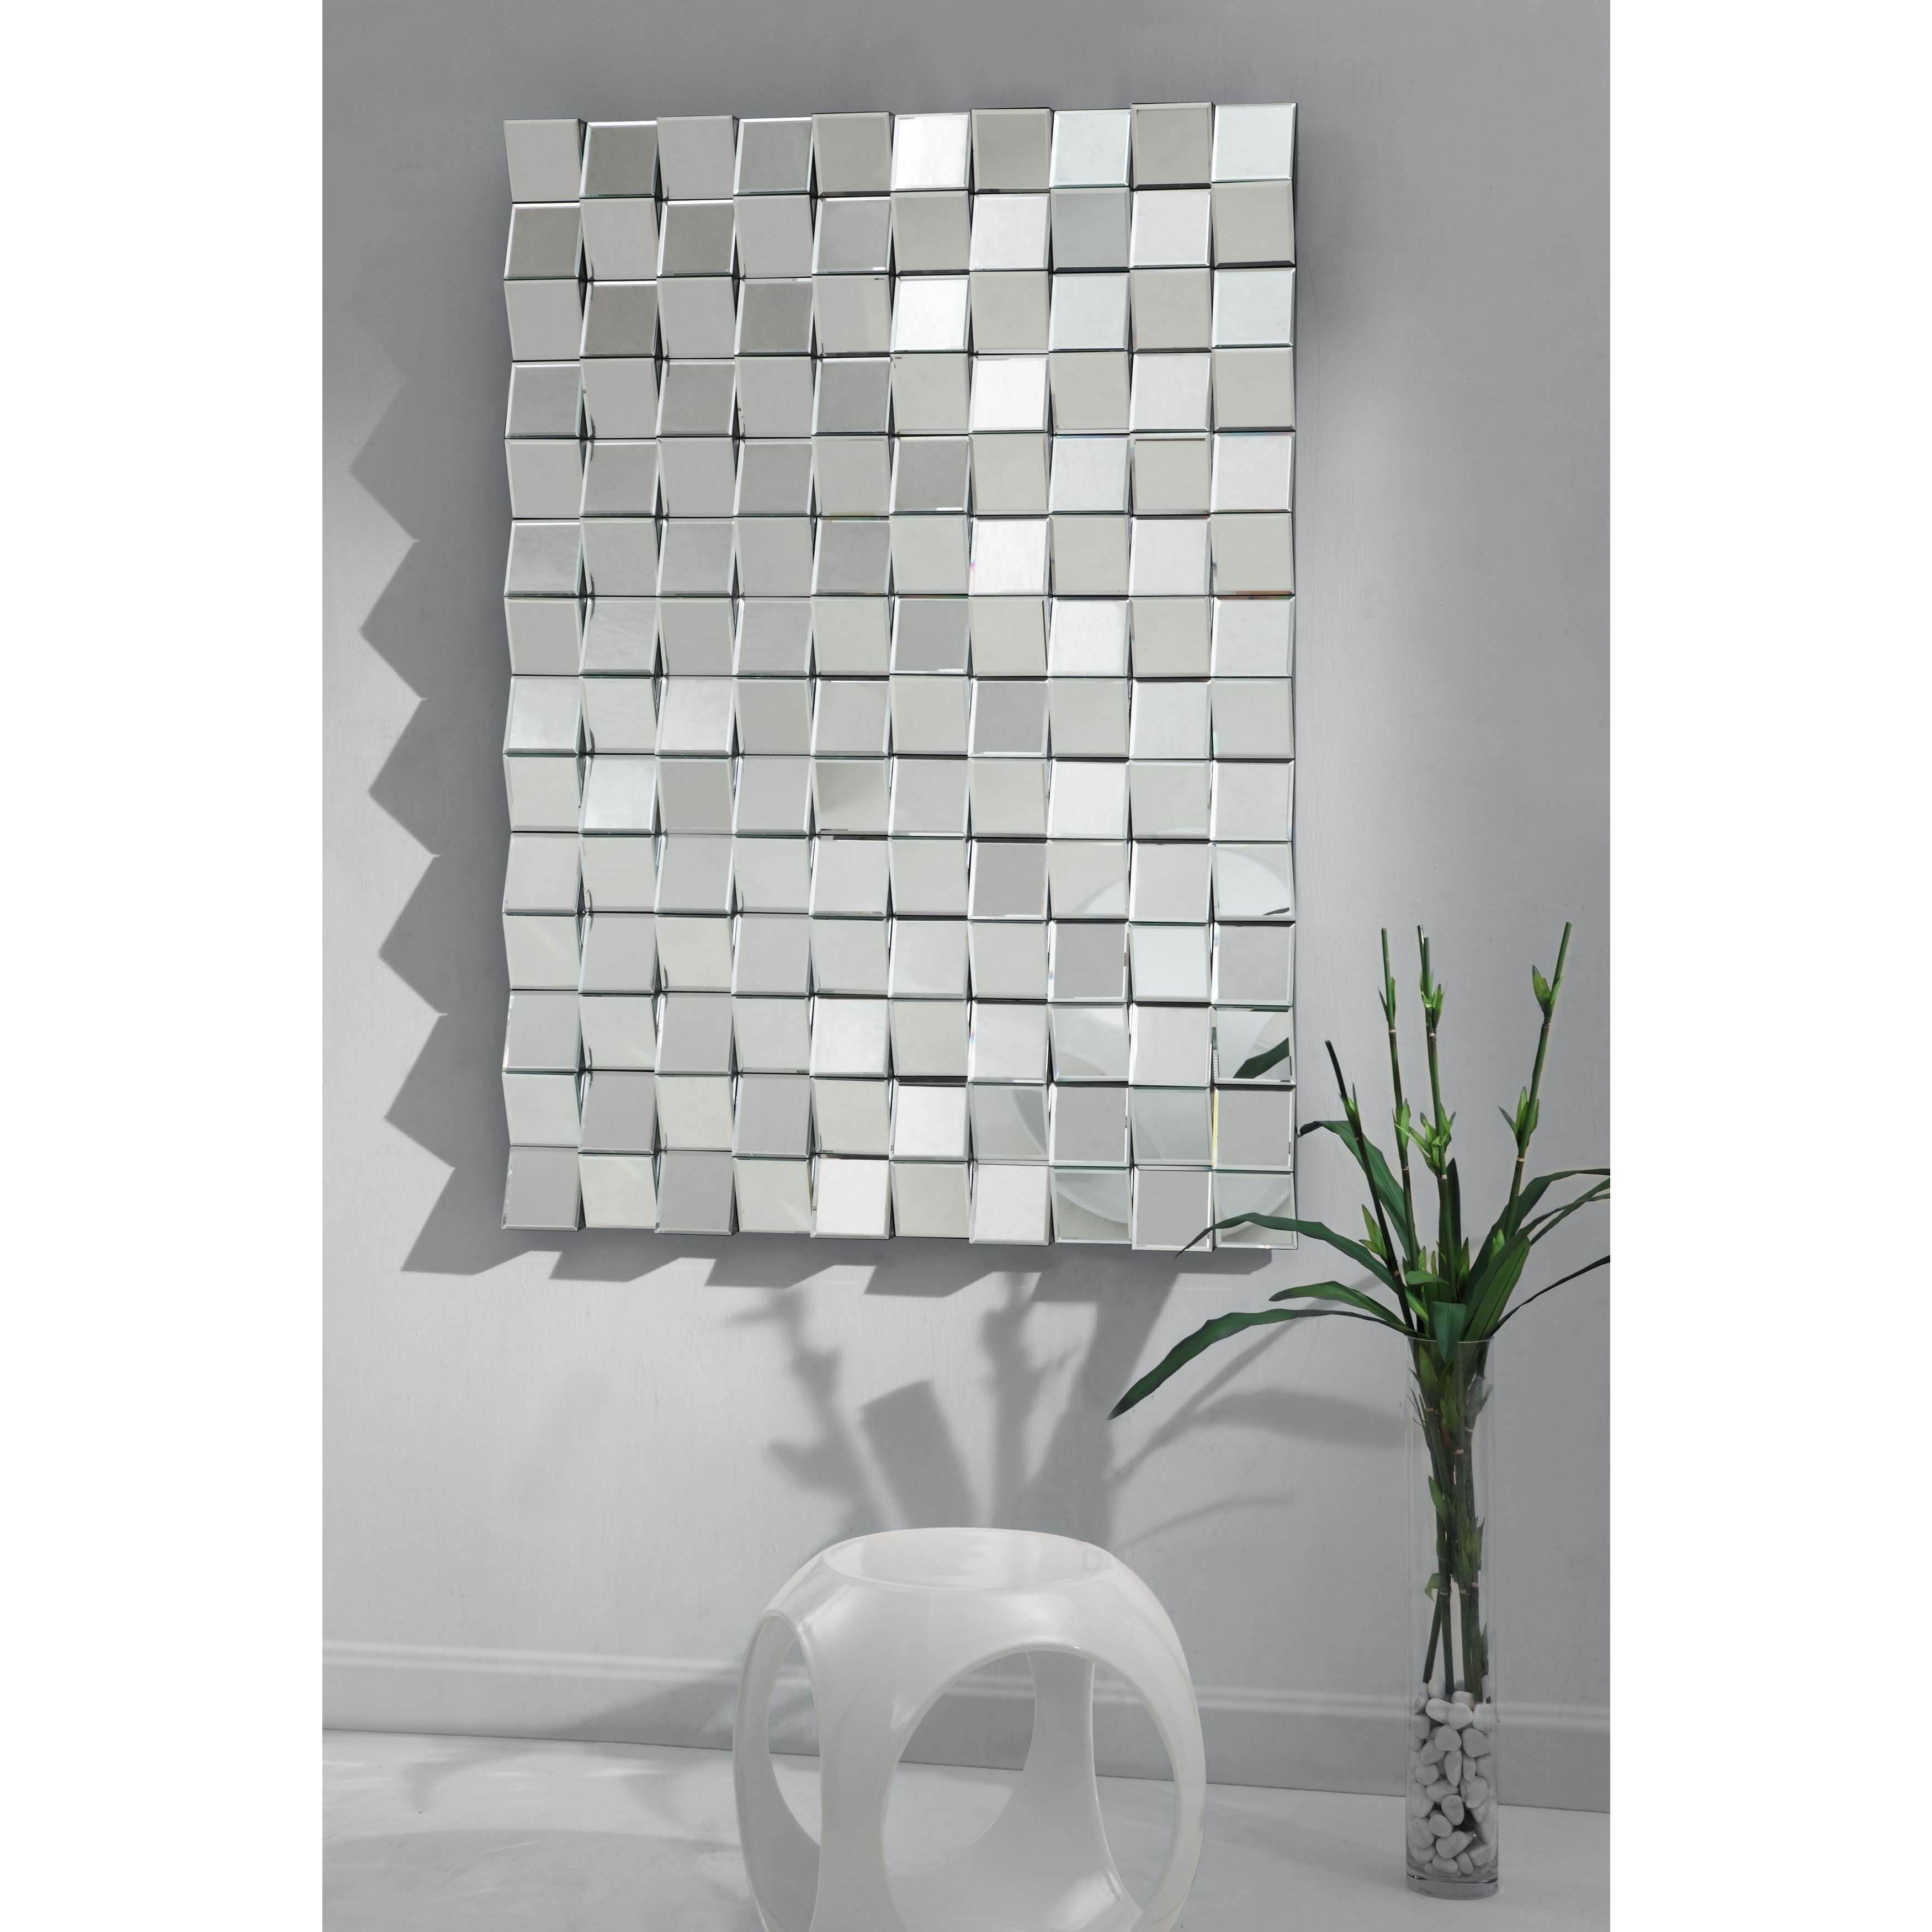 Pennsburg Rectangle Wall Mirror Throughout Most Up To Date Featuring A Stunning Checkerboard Motif, This Remarkable Wall Mirror (View 13 of 20)